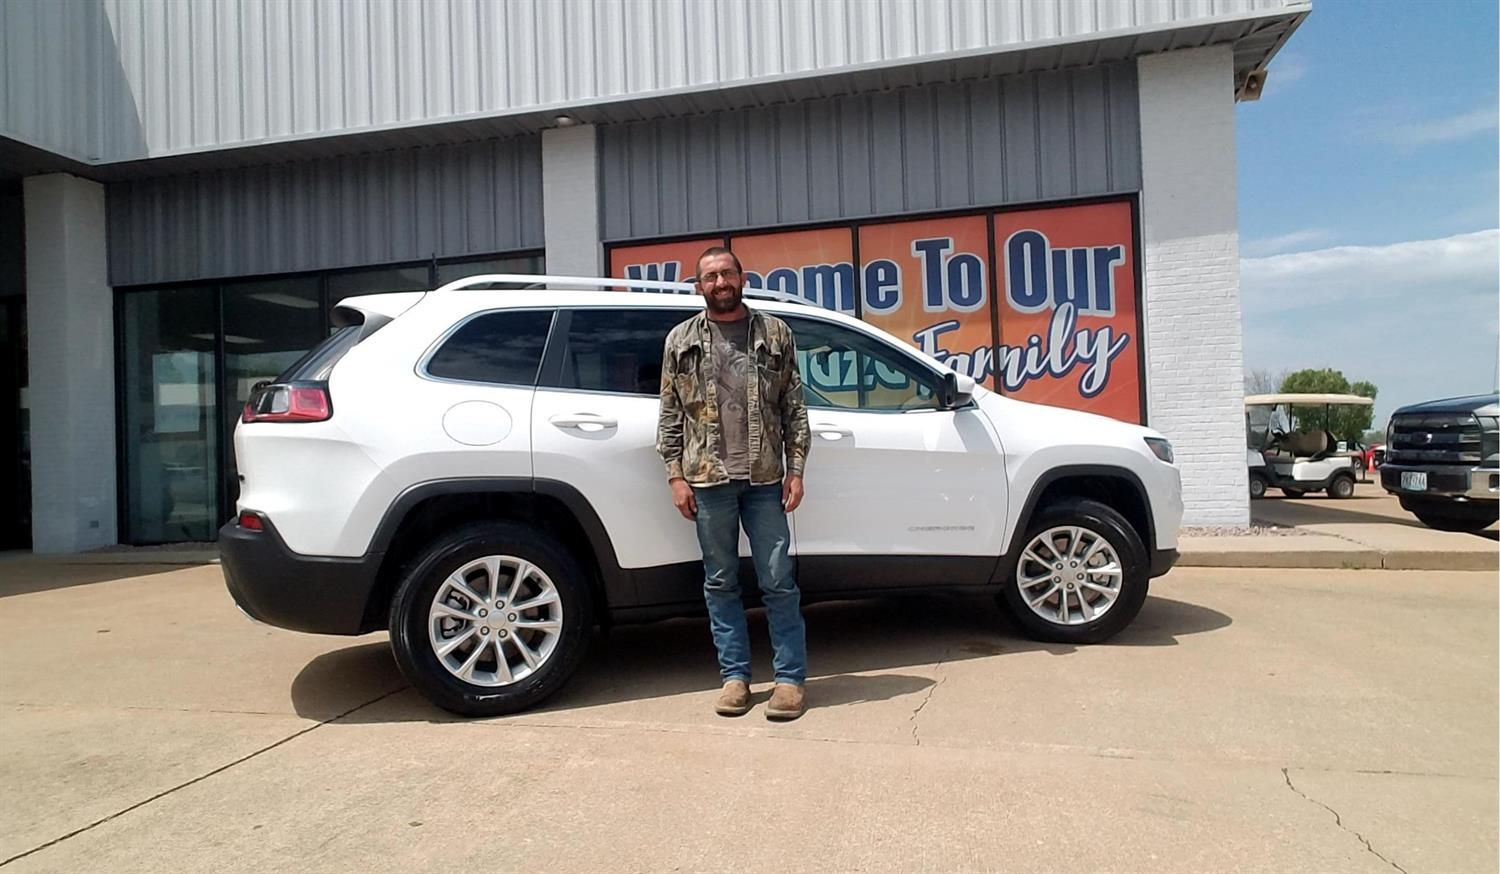 Brad Wishing You Many Miles Of Smiles In Your 2019 Jeep Cherokee All The Best Auto Plaza Cdjr Farmington And Chris Engelage Jeep Cherokee Farmington Jeep